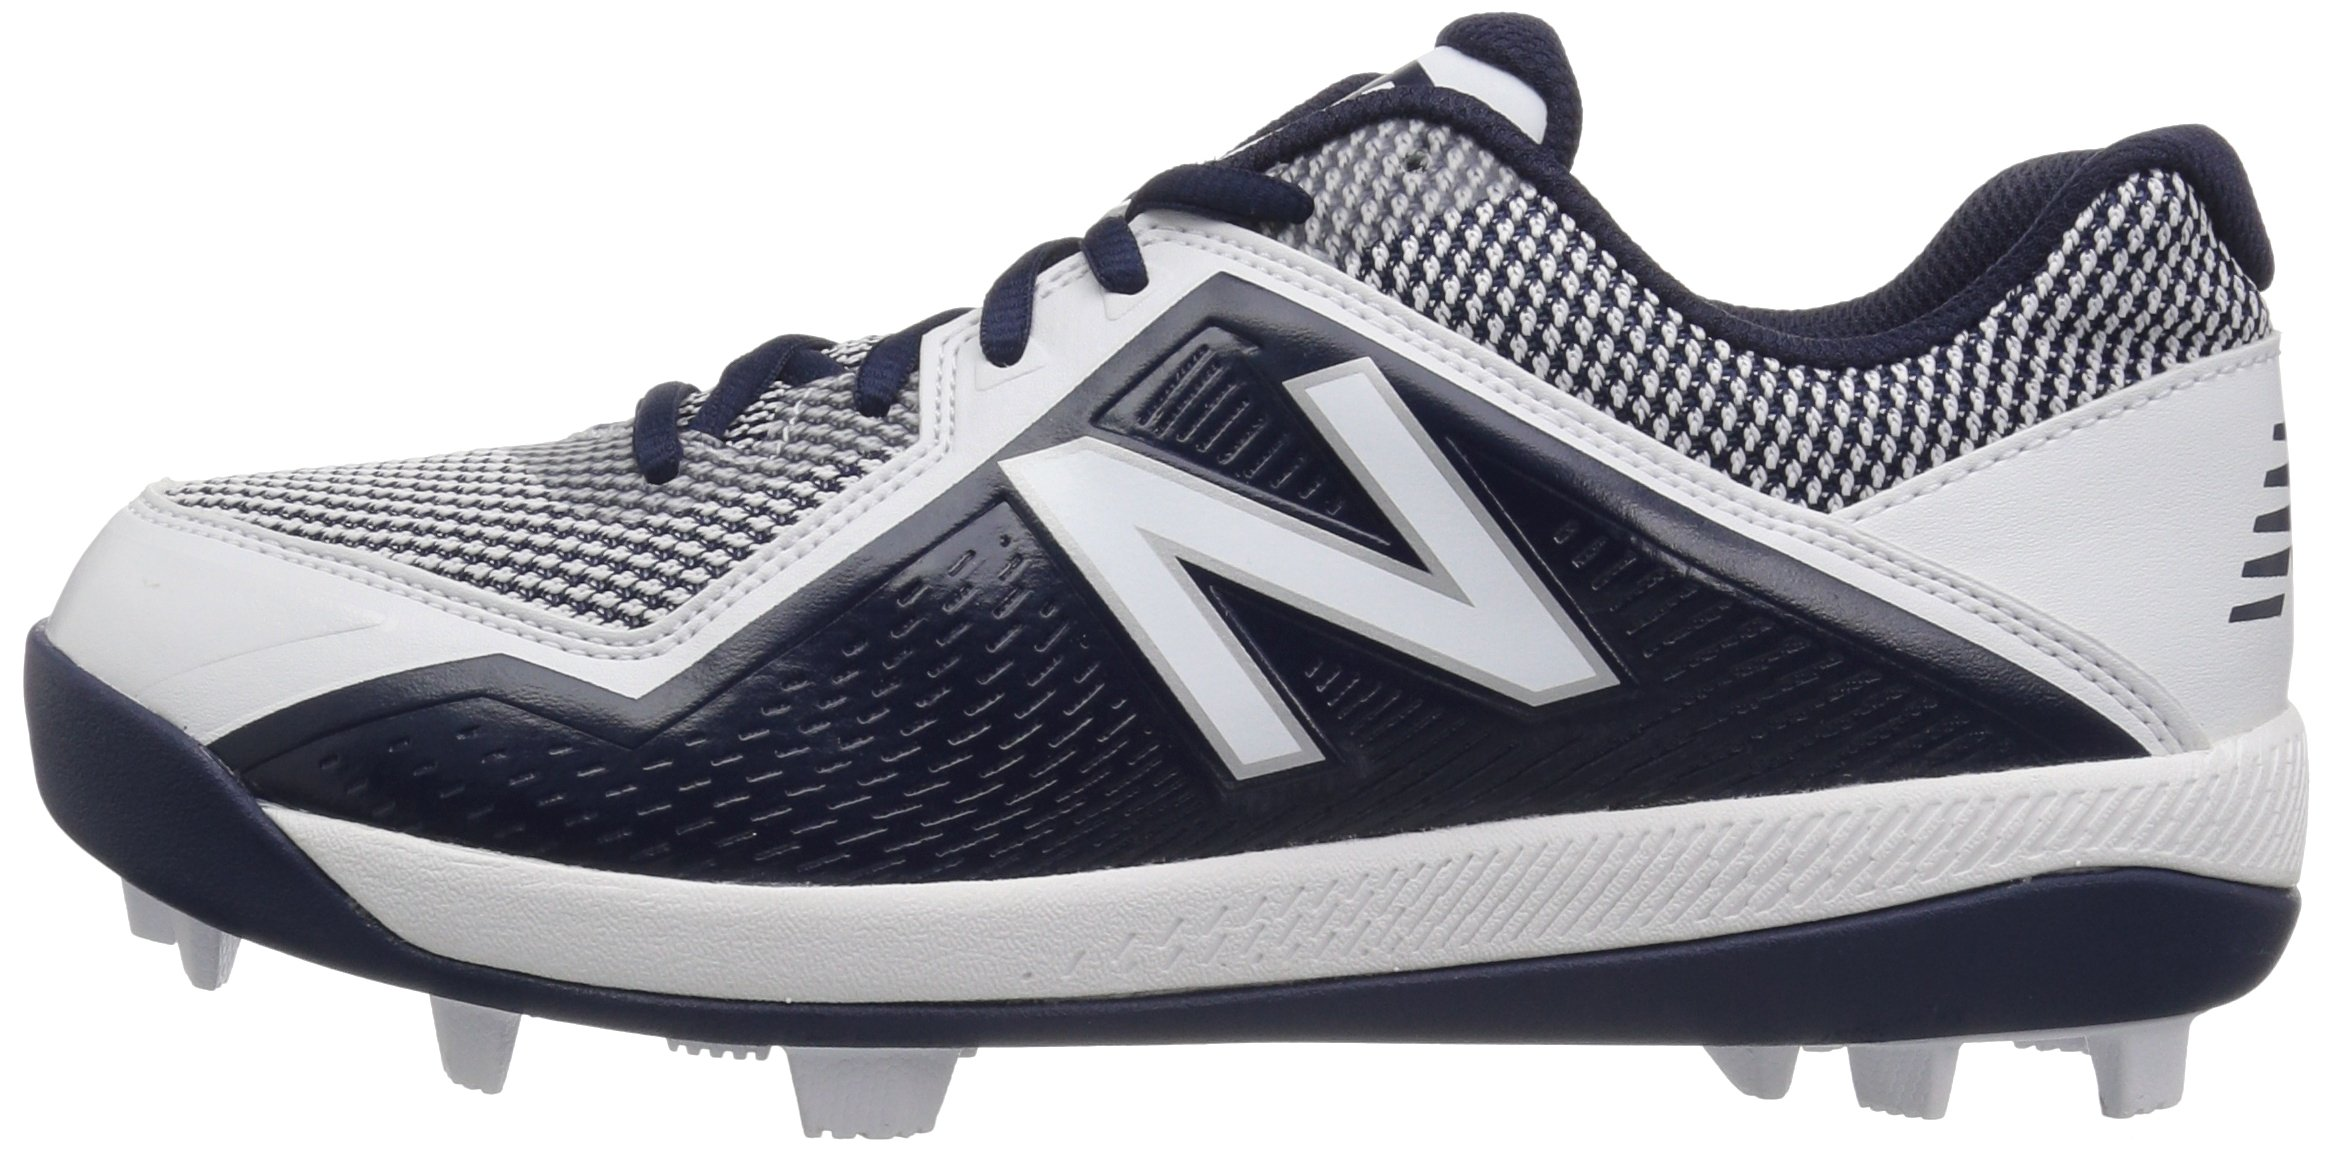 New Balance Boys' 4040v4, Navy/White, 1 W US Little Kid by New Balance (Image #5)